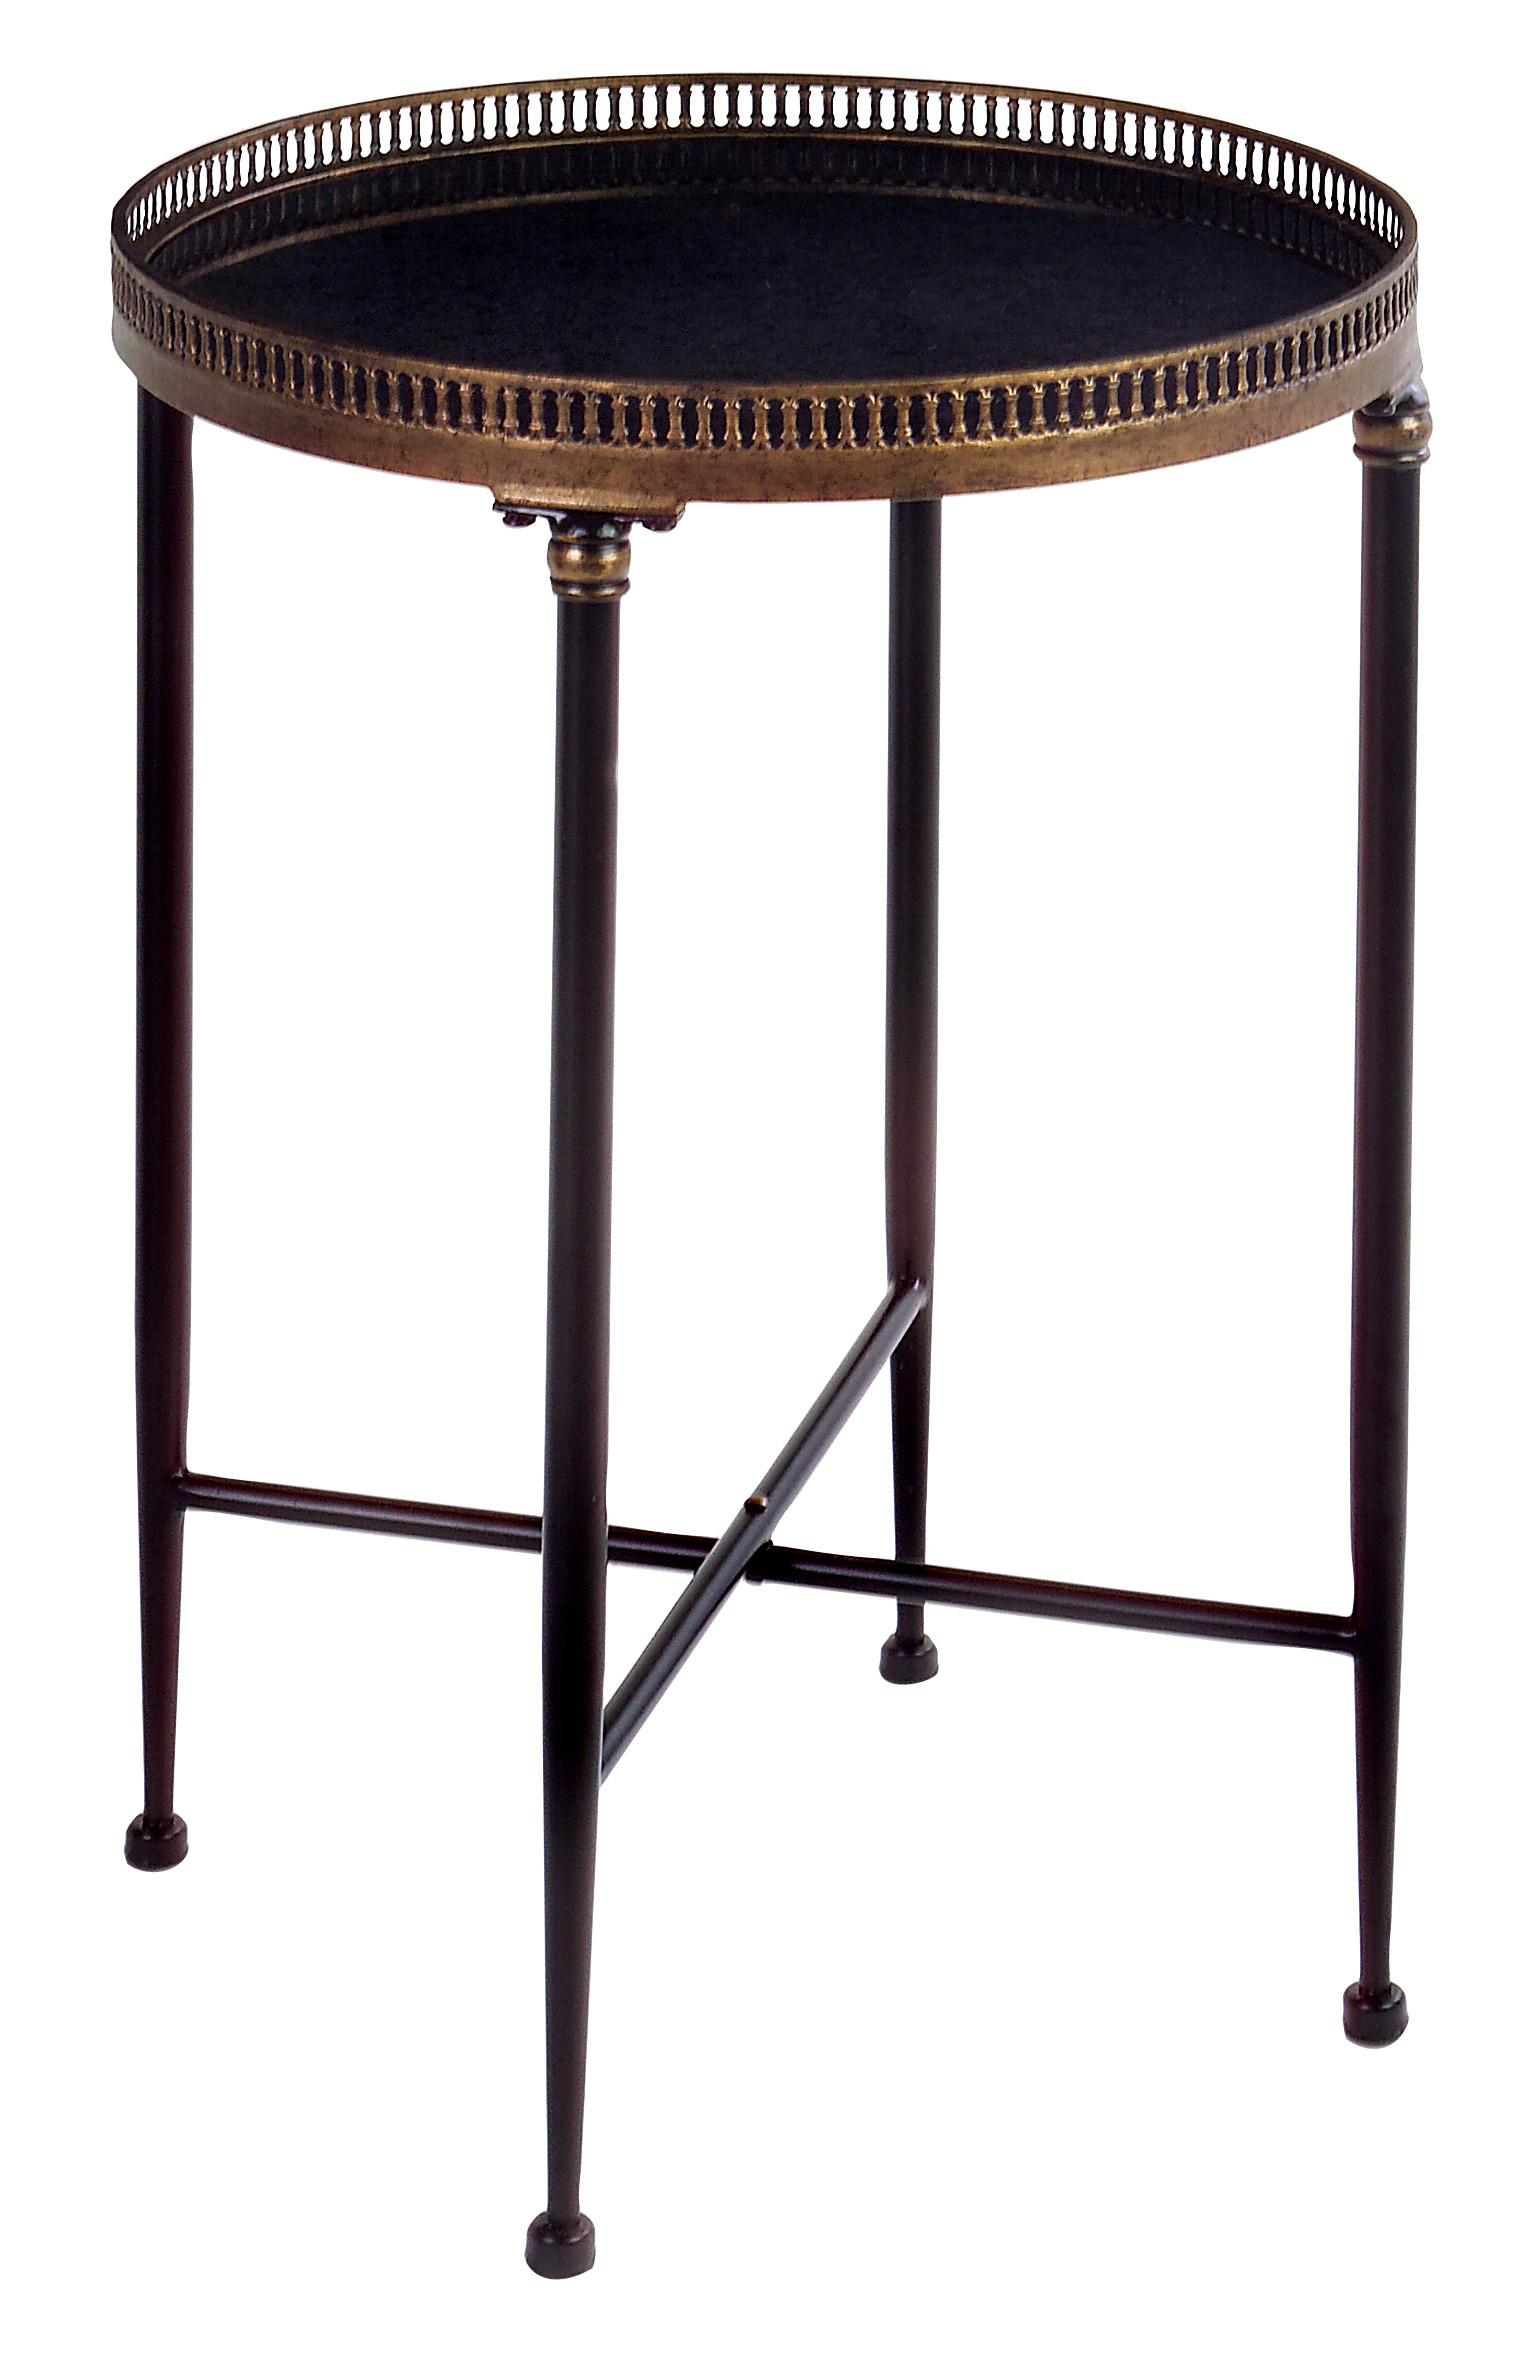 round walnut side table with nickel accents colorful accent tables black ojcommerce cassie glass shelf grey outdoor furniture antique lamp metal end tweed barn door console